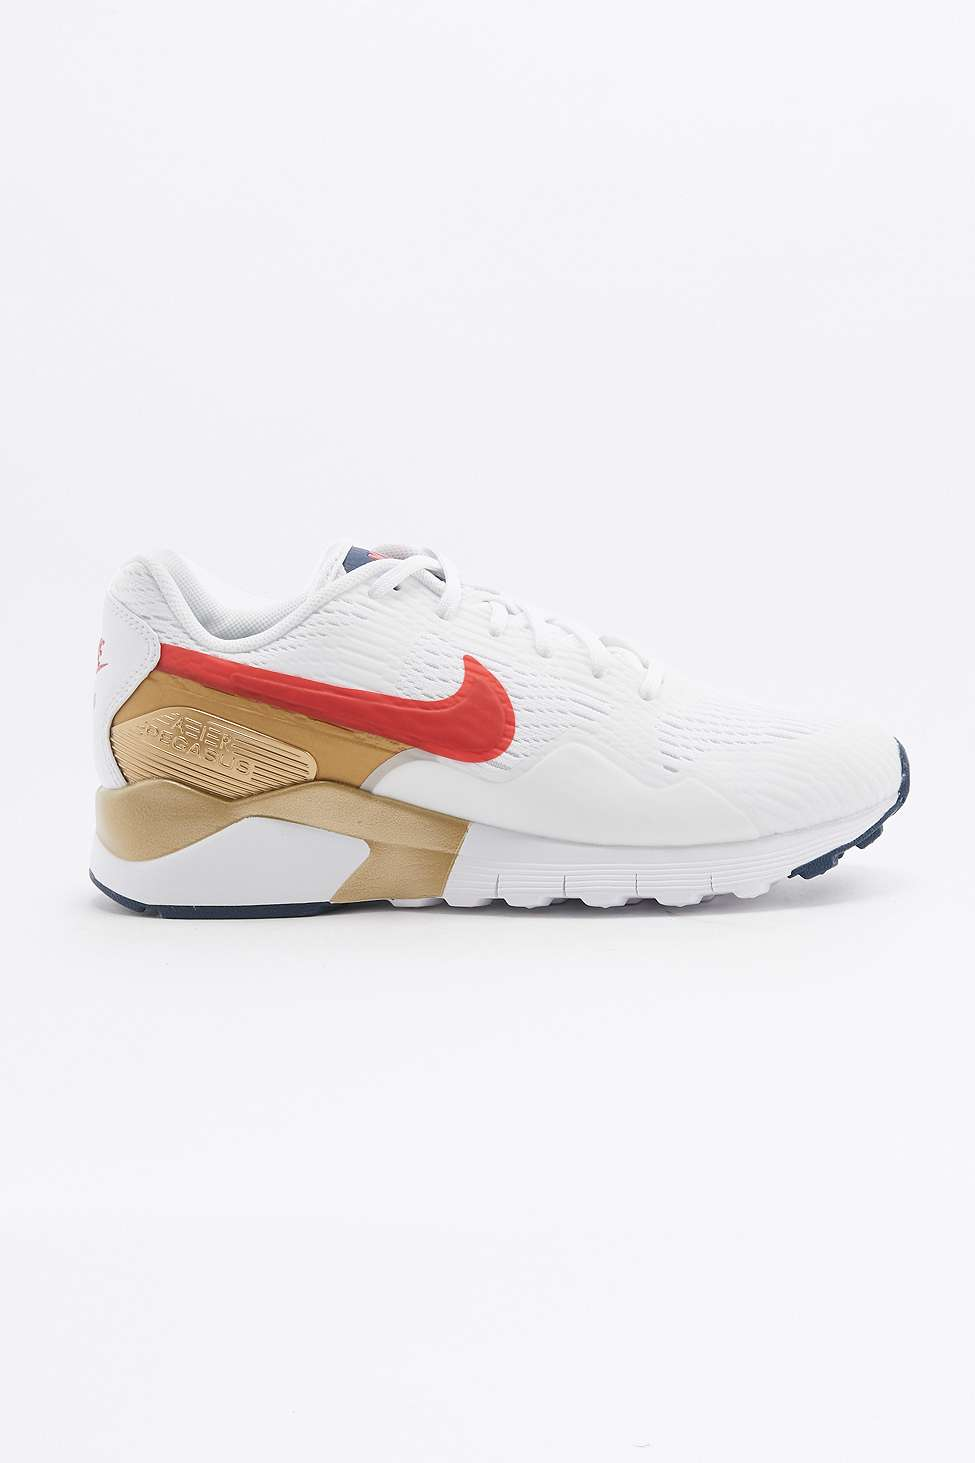 new style 9979b 9323a ... Nike Air Pegasus 92 Red Gold and Blue Trainers 2 ...